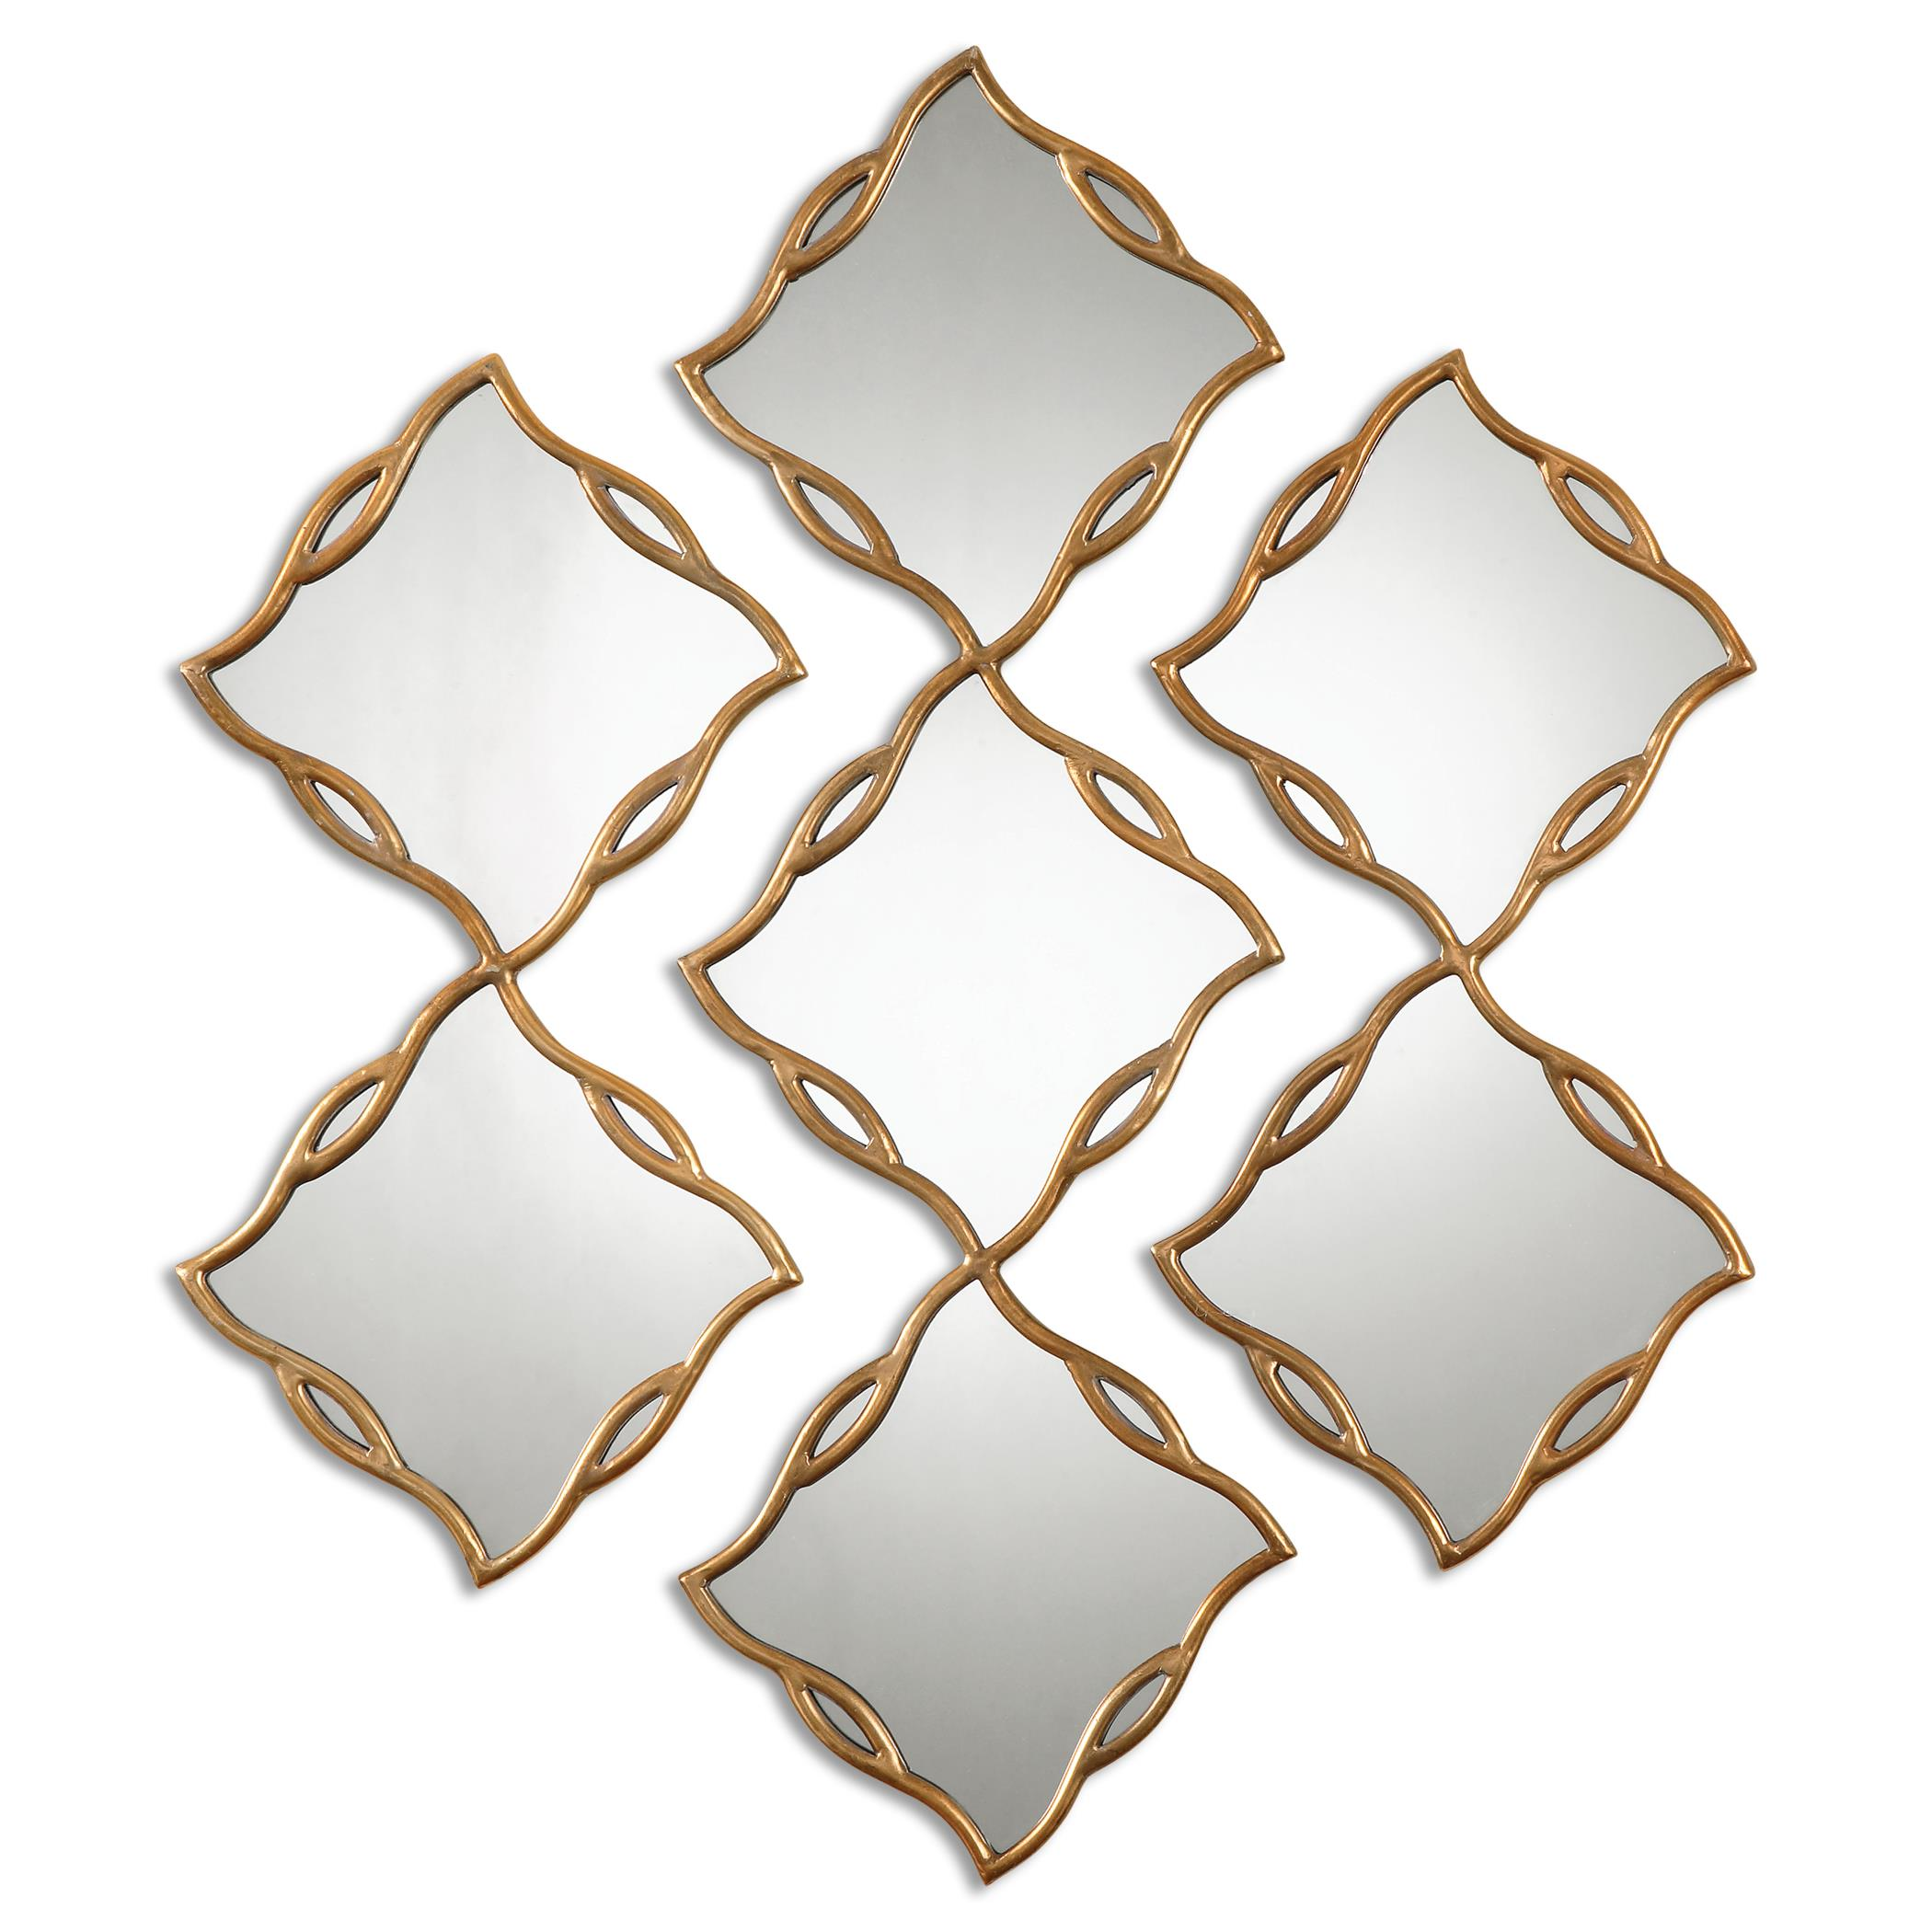 Uttermost Mirrors Terlizzi Gold Mirrors, S/3 - Item Number: 12918